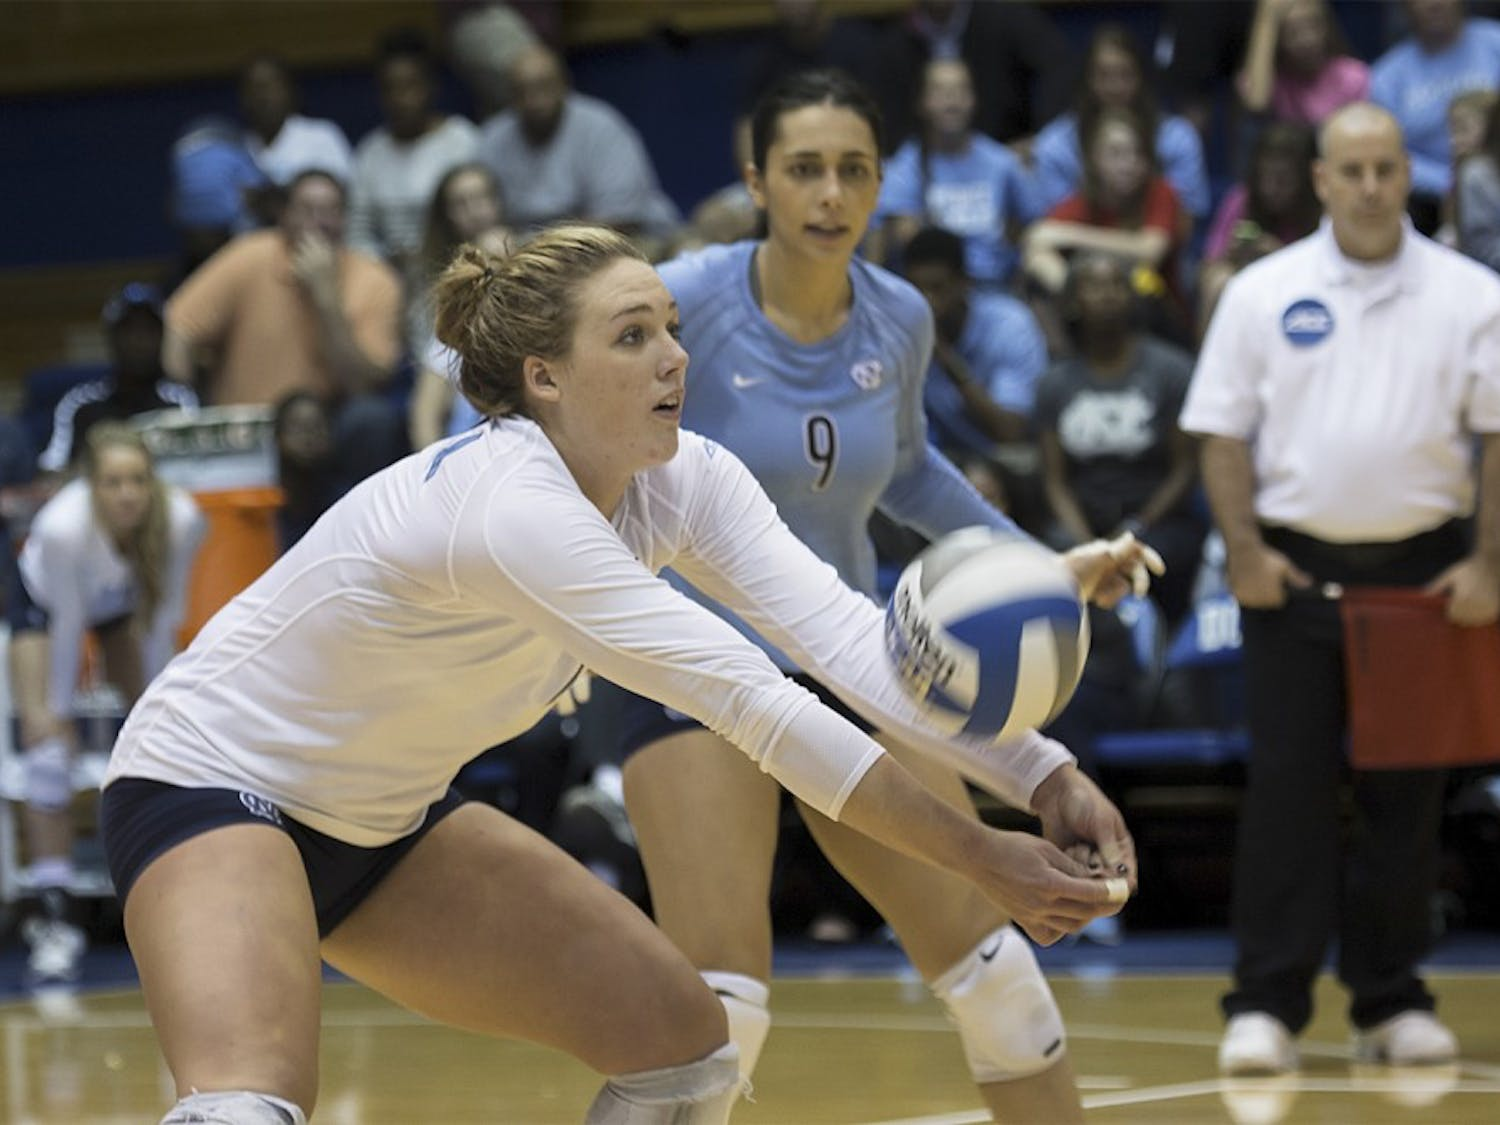 UNC outside hitter Leigh Andrew (4) makes a pass during Sunday's 3-0 win against Duke at Cameron Indoor Stadium.